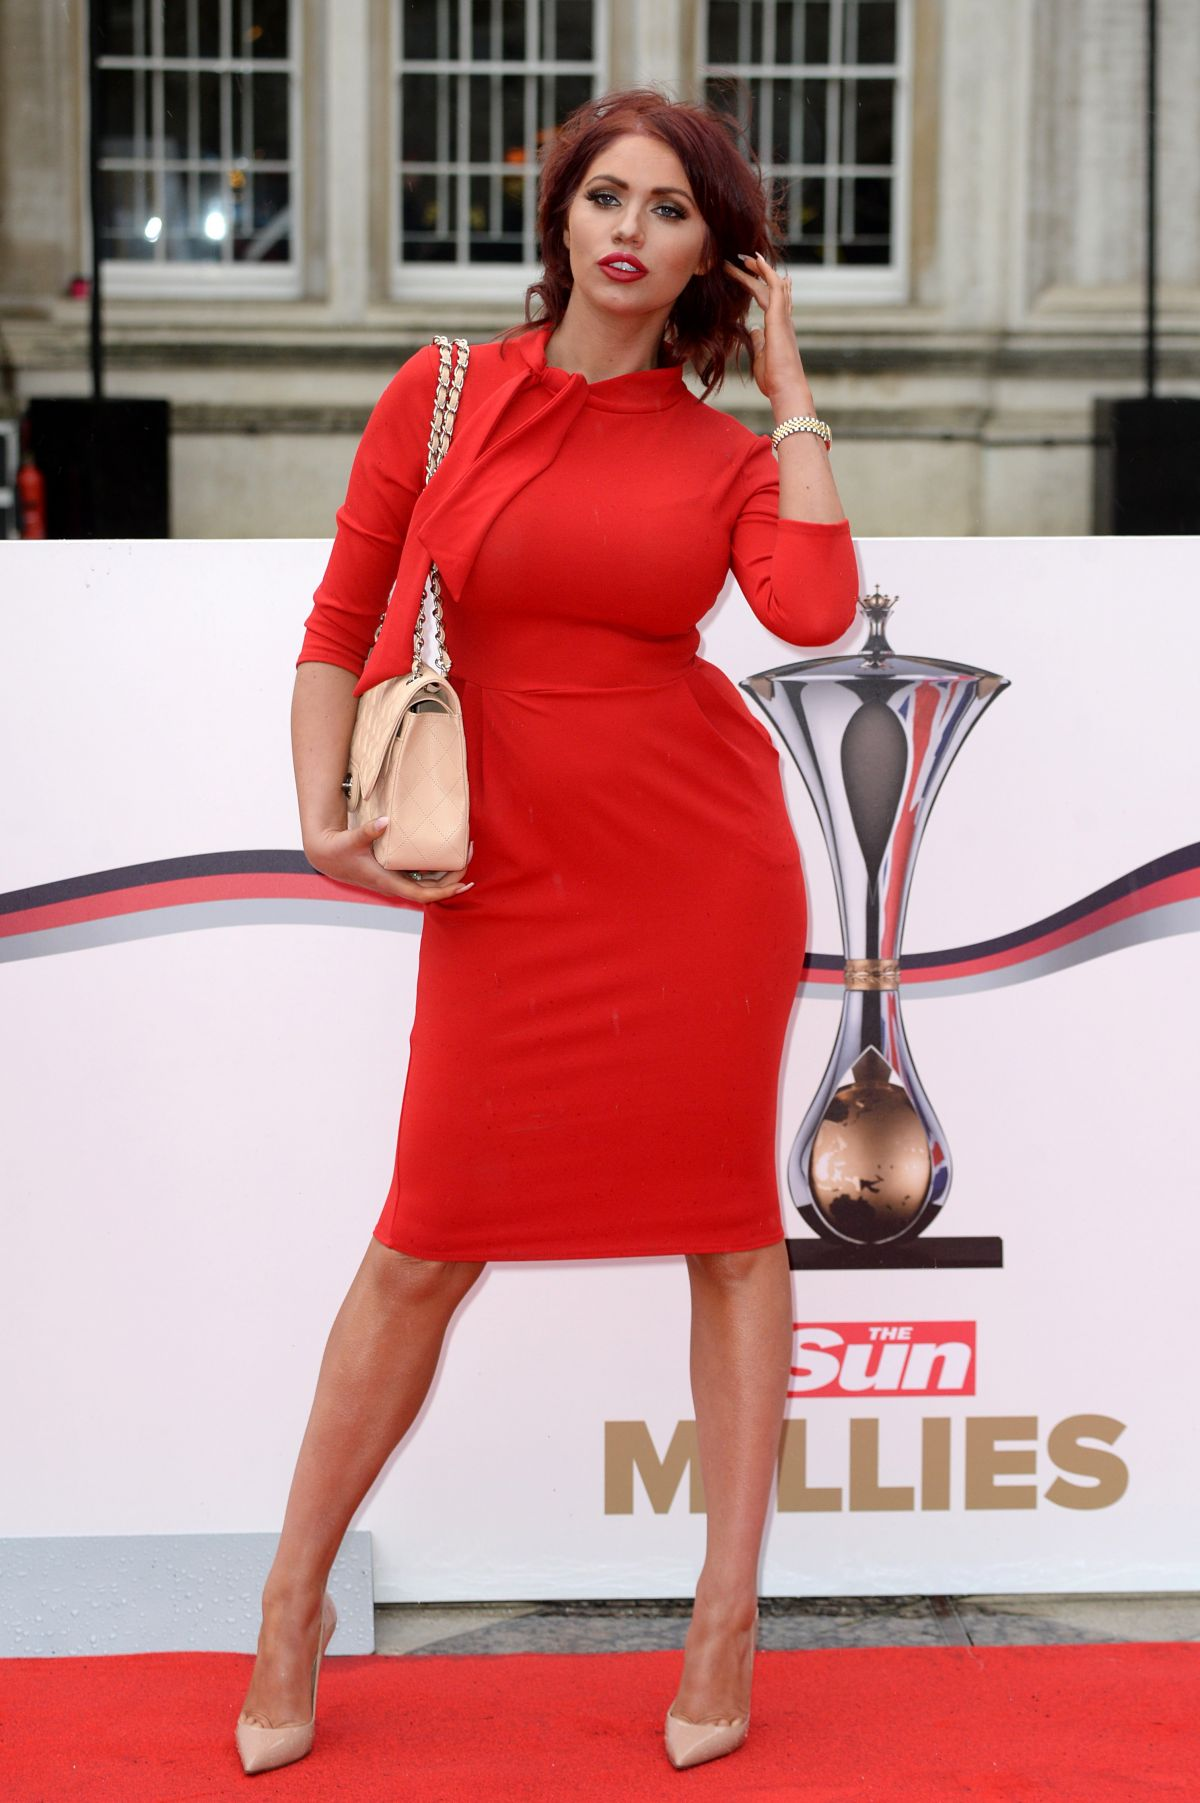 AMY CHILDS at The Sun Military Awards in London 01/22/2016